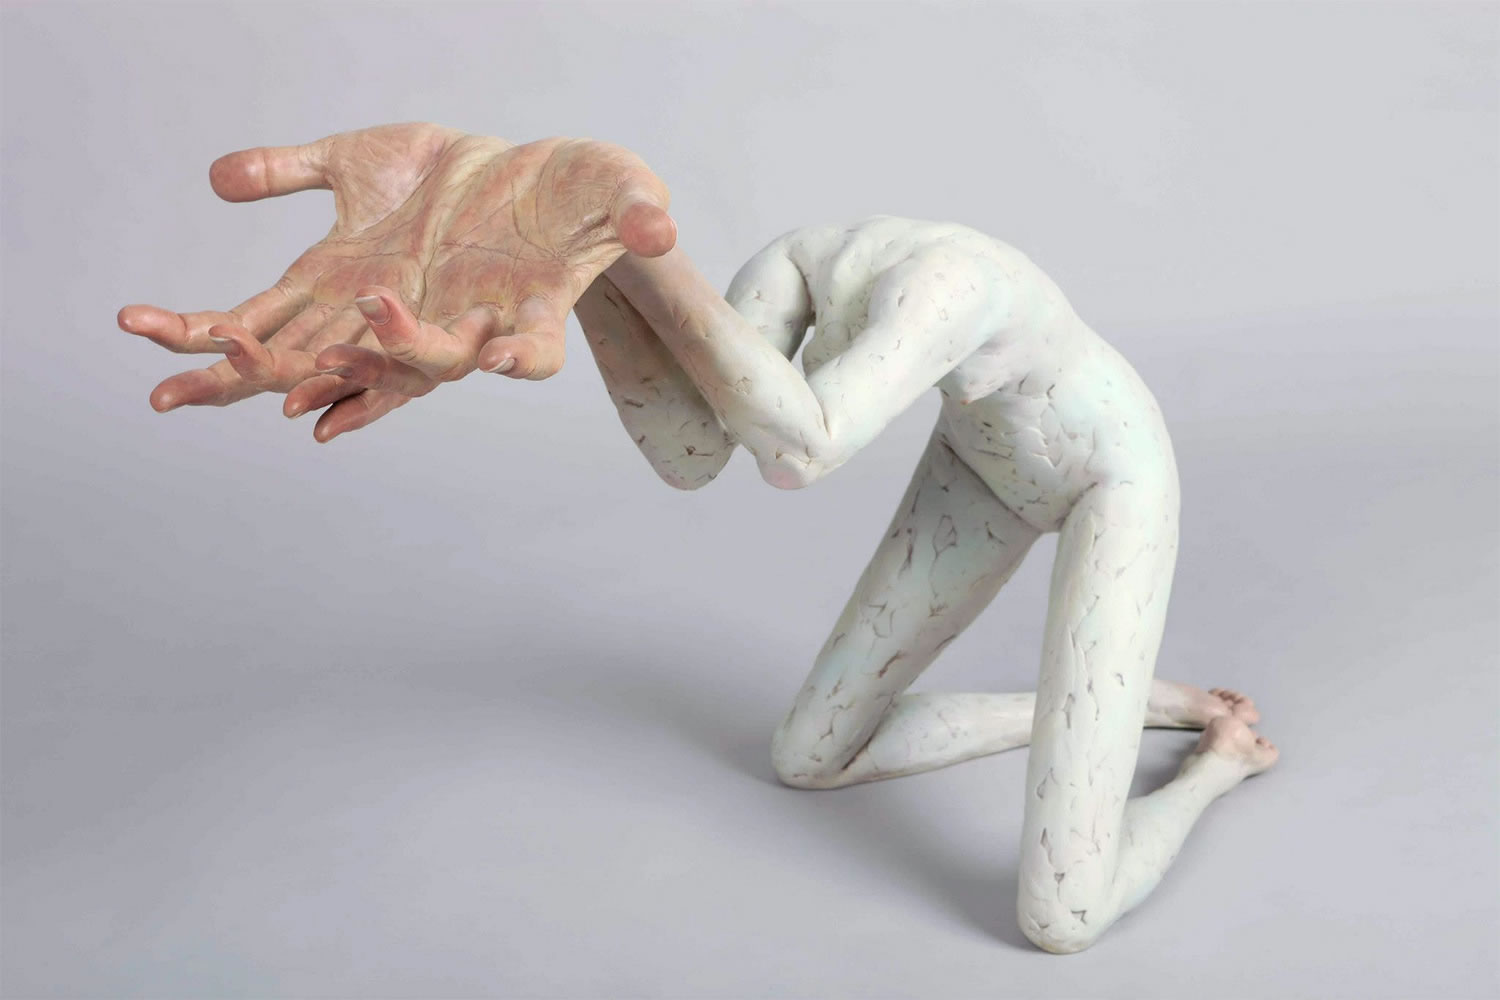 big hands no head, sculpture by Xooang Choi